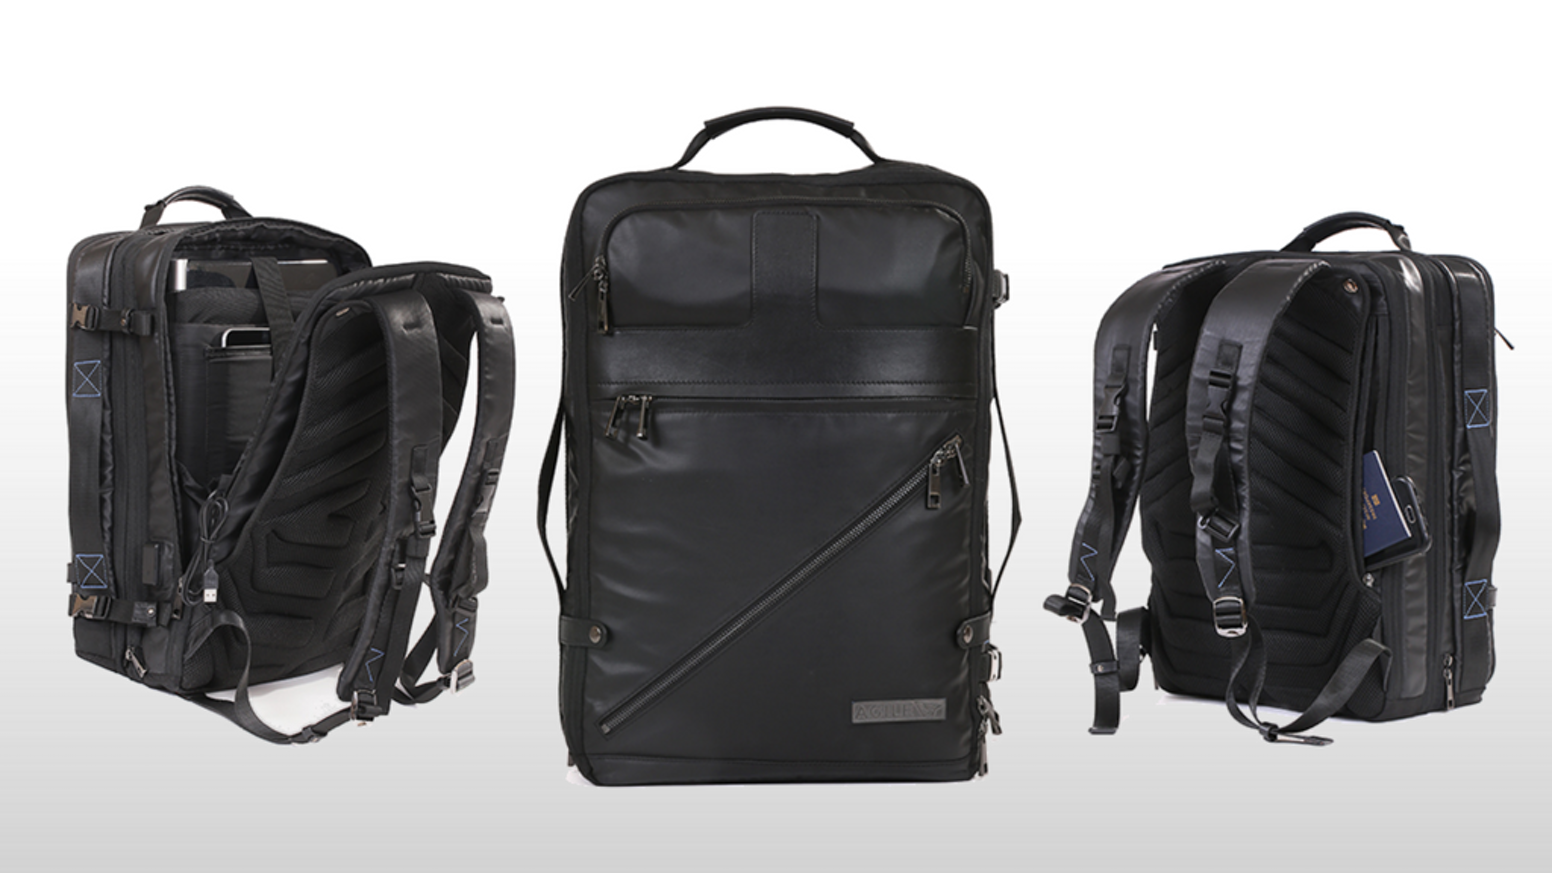 The ultimate premium backpack for the everyday carry or weekend trips. Crafted with only the finest materials to last a generation.